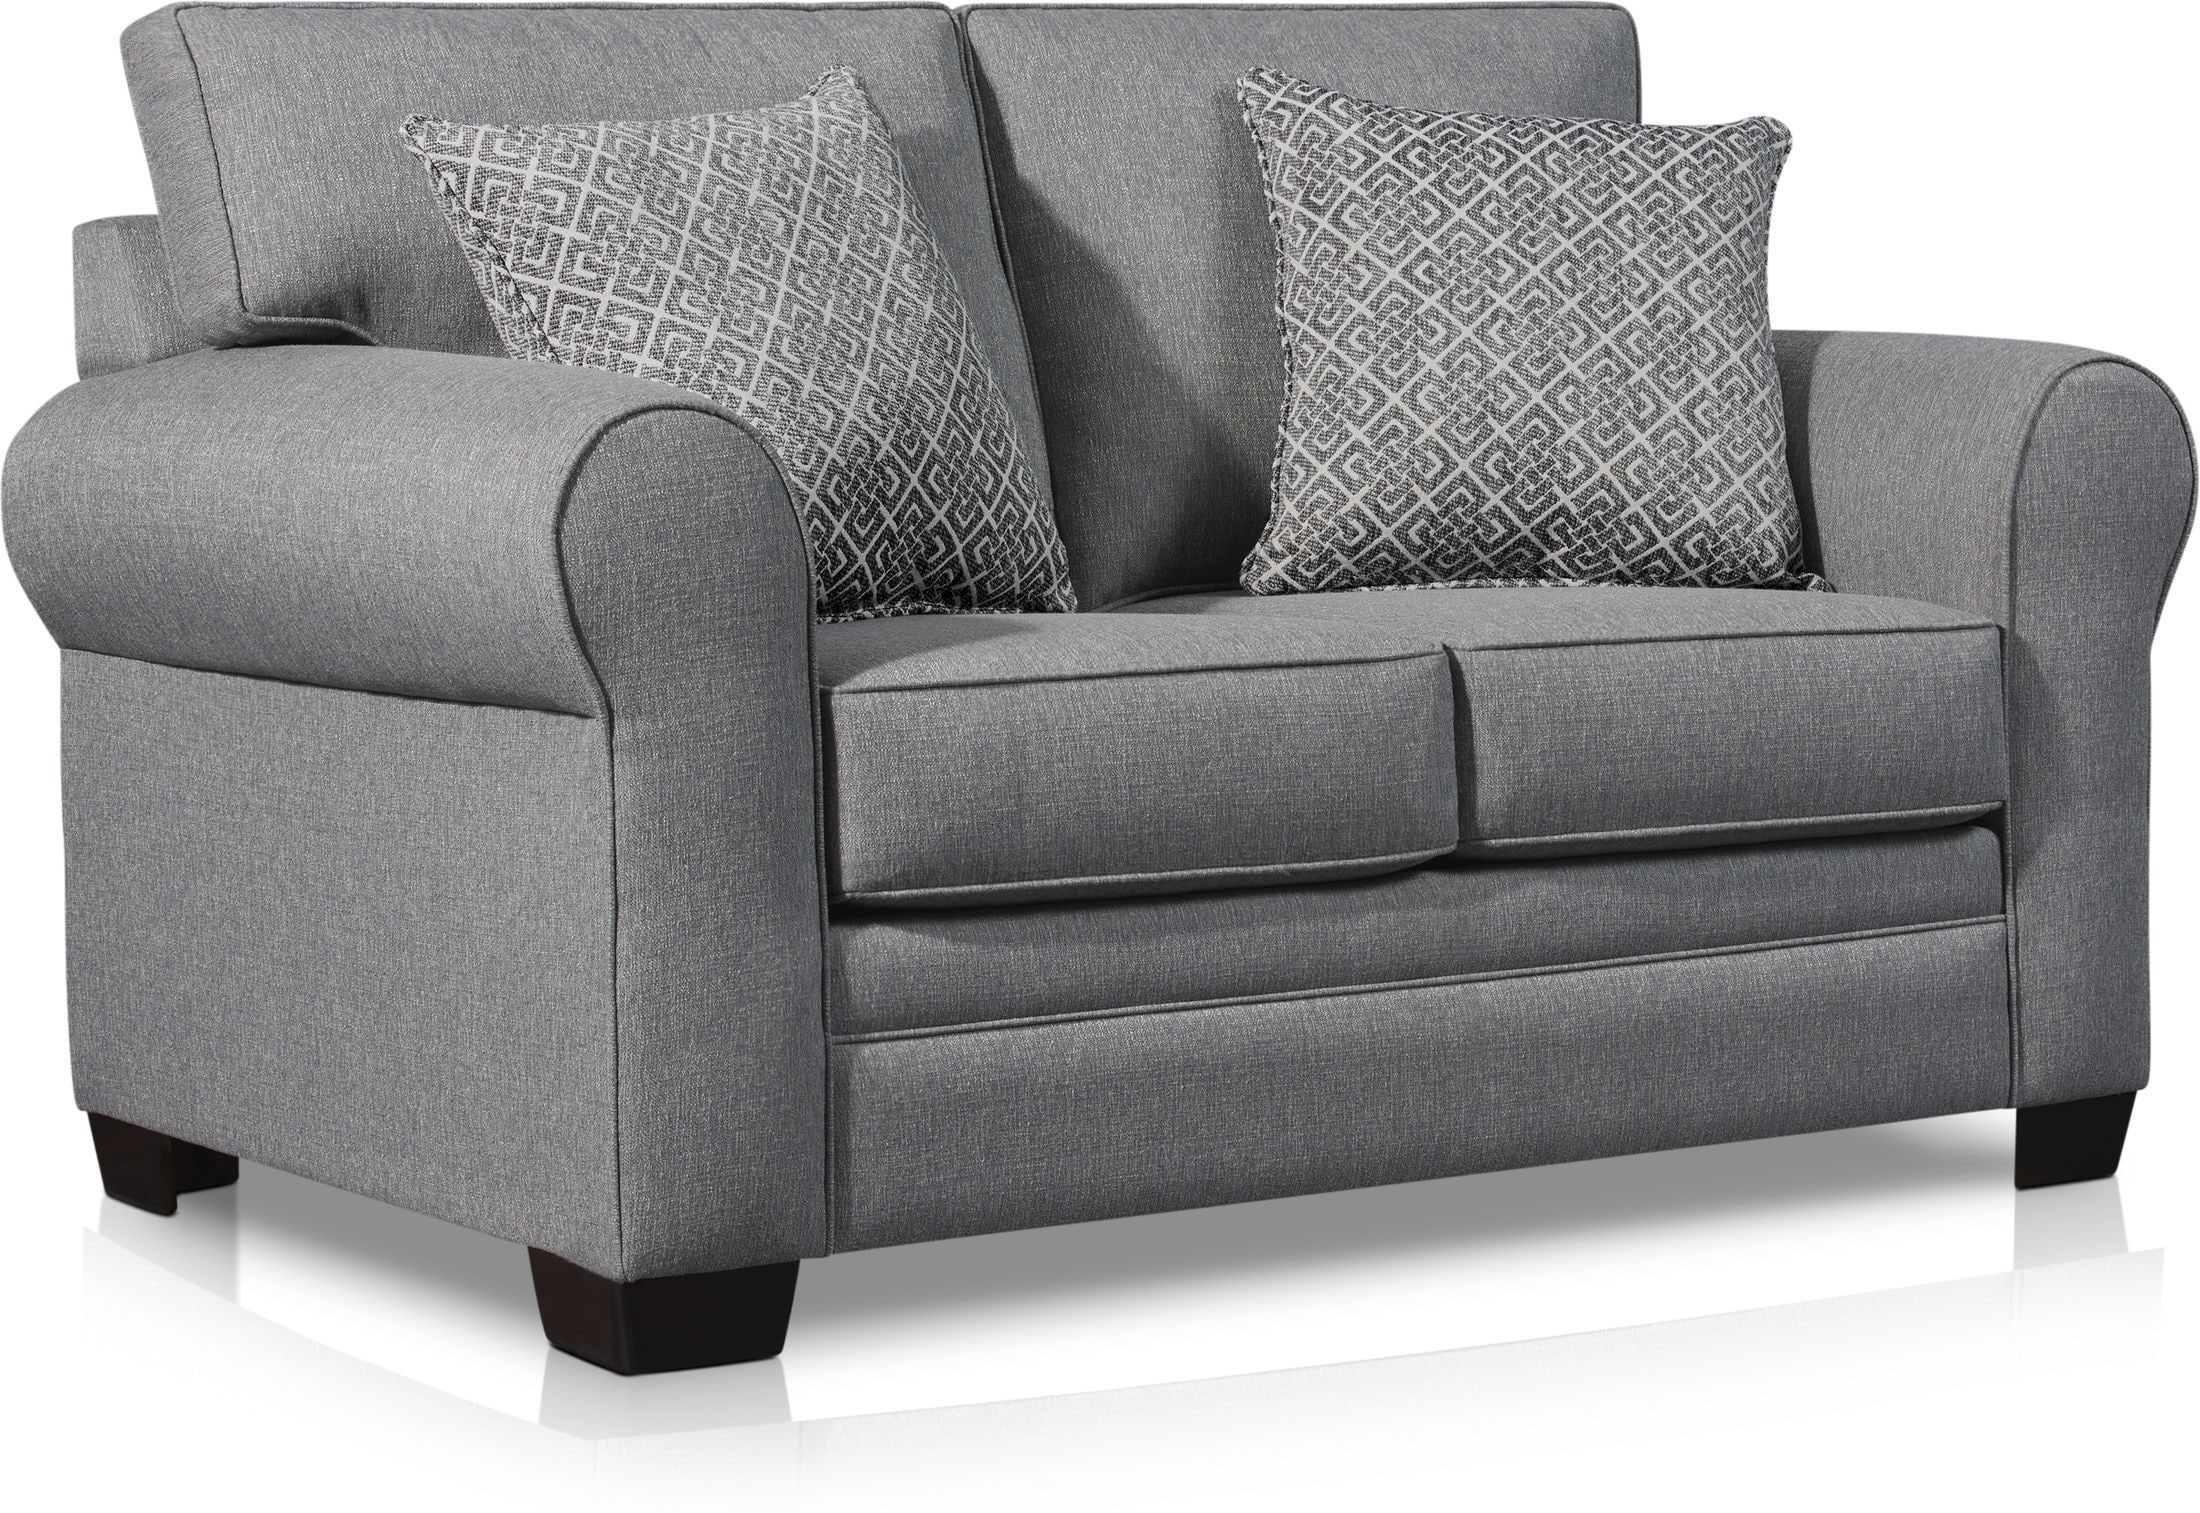 Living Room Furniture - Camila Loveseat